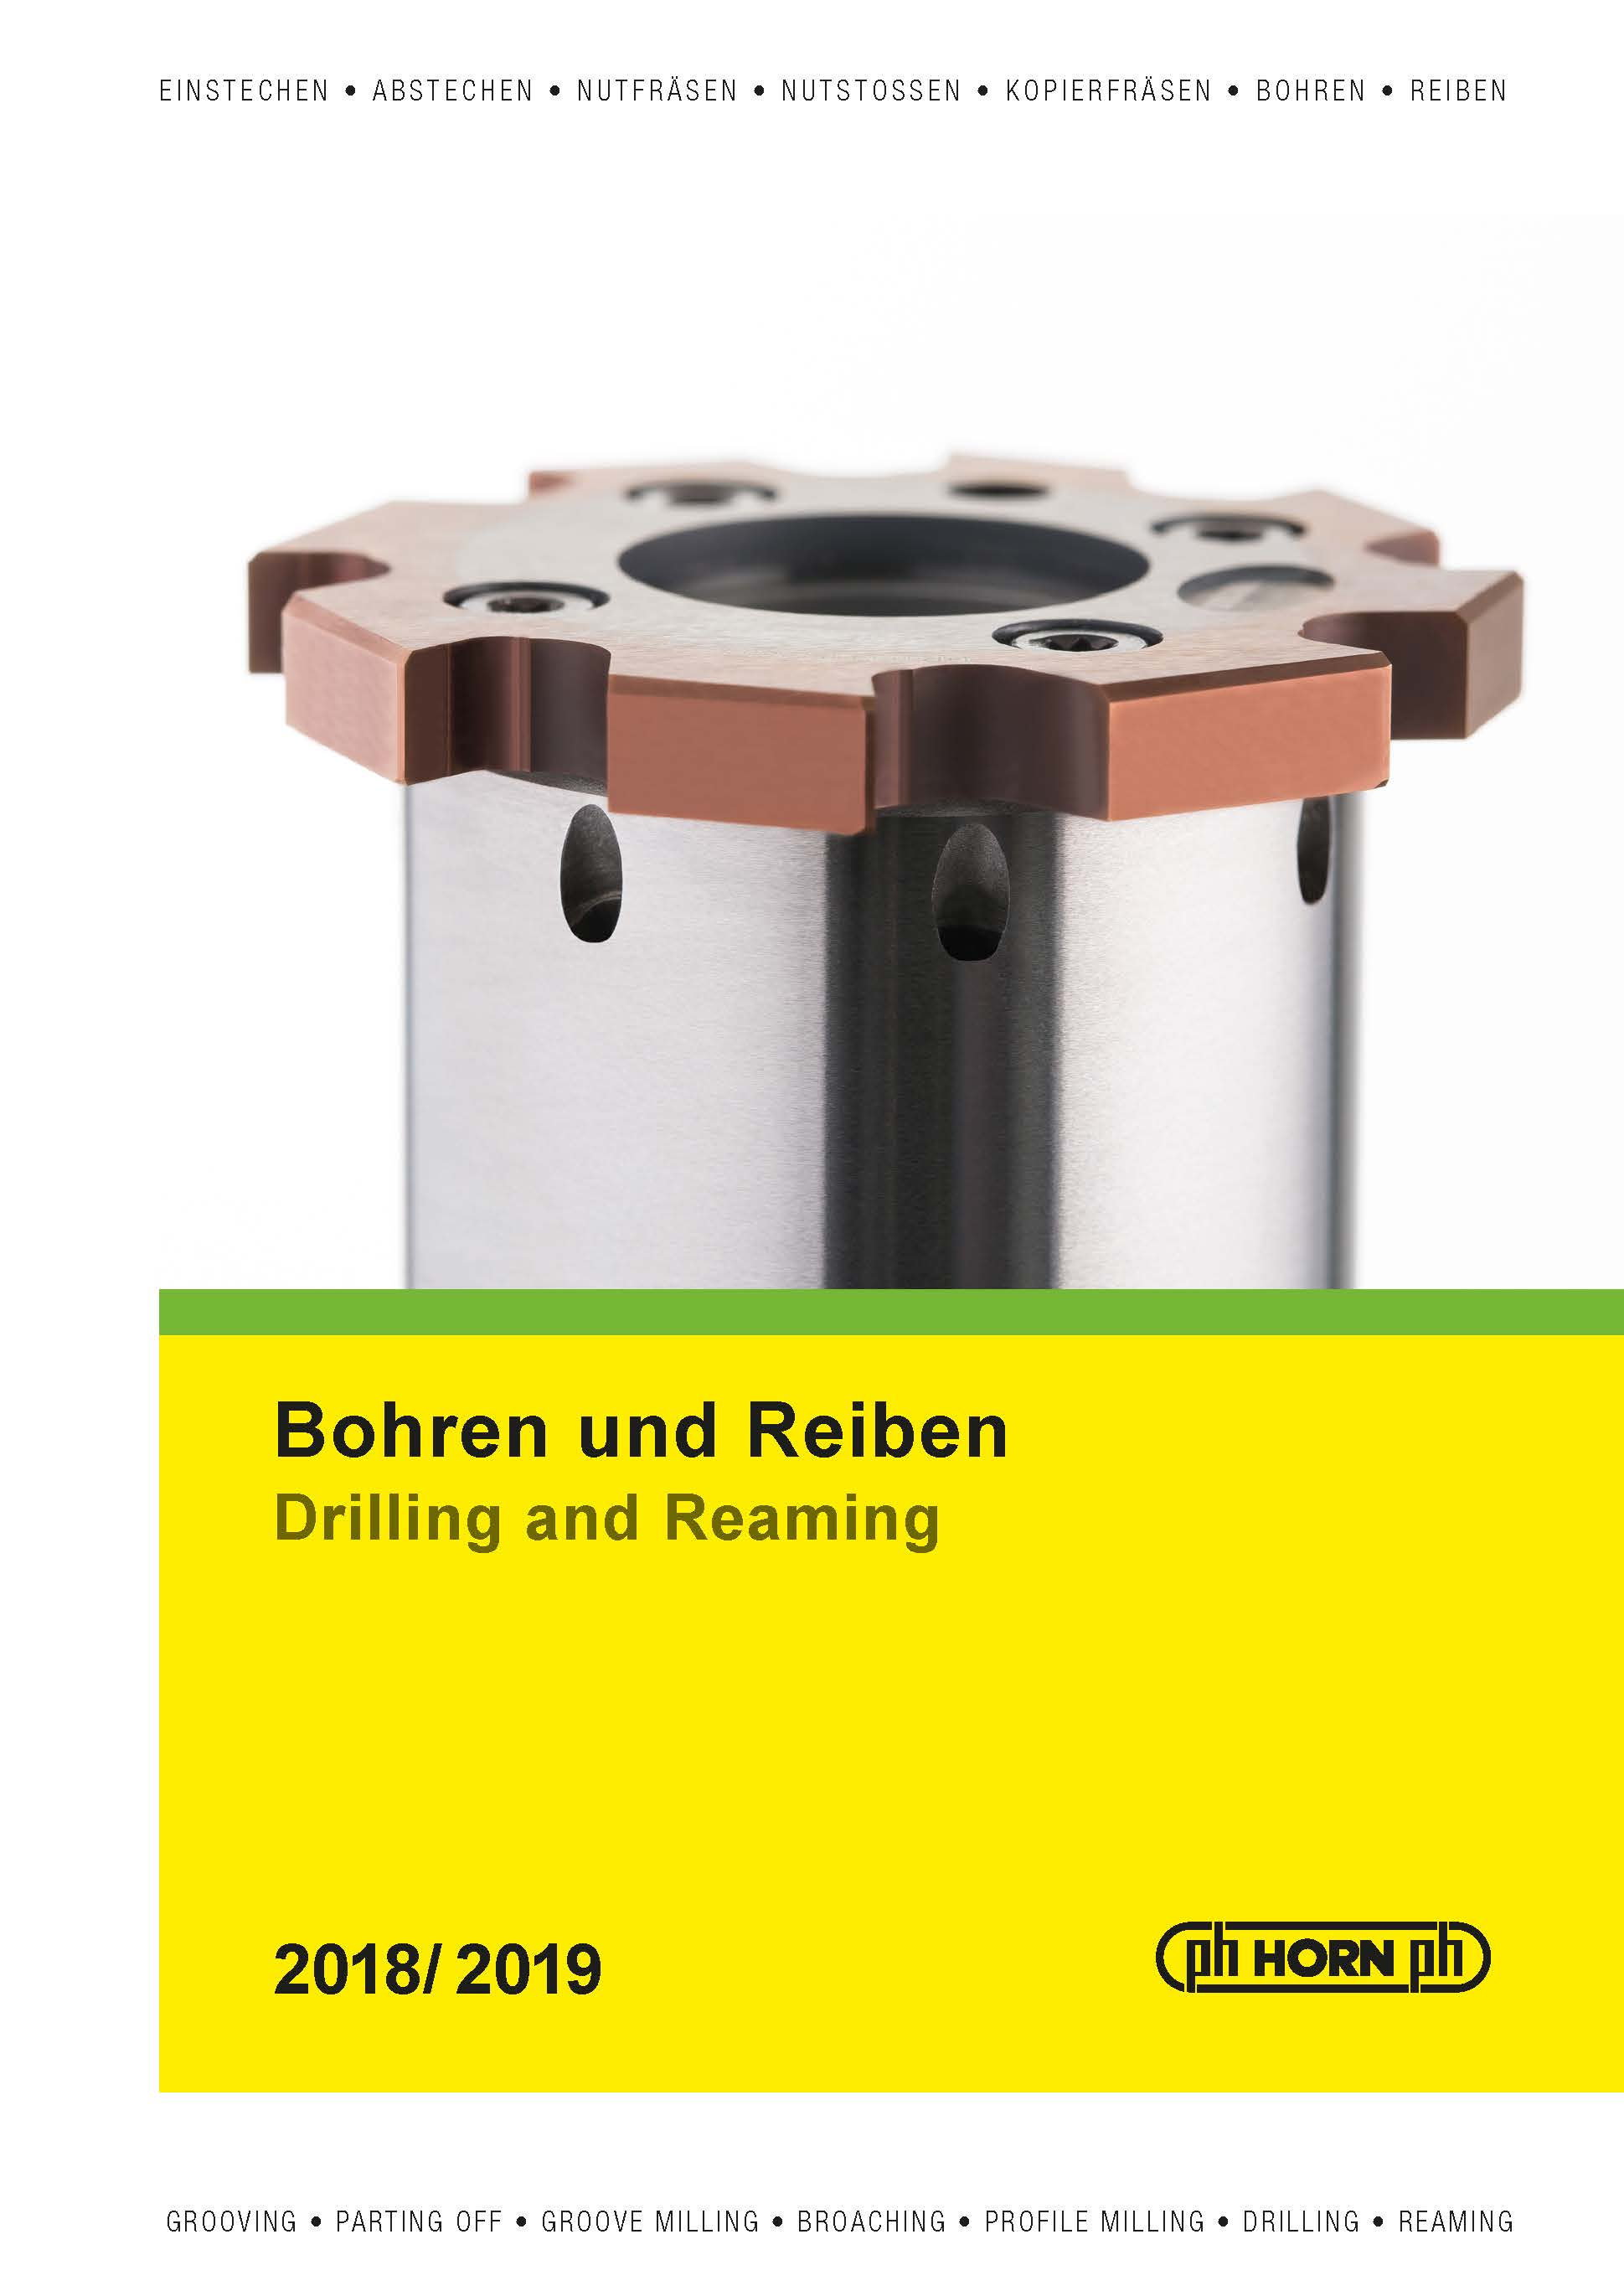 Download Drilling & Reaming Catalogue